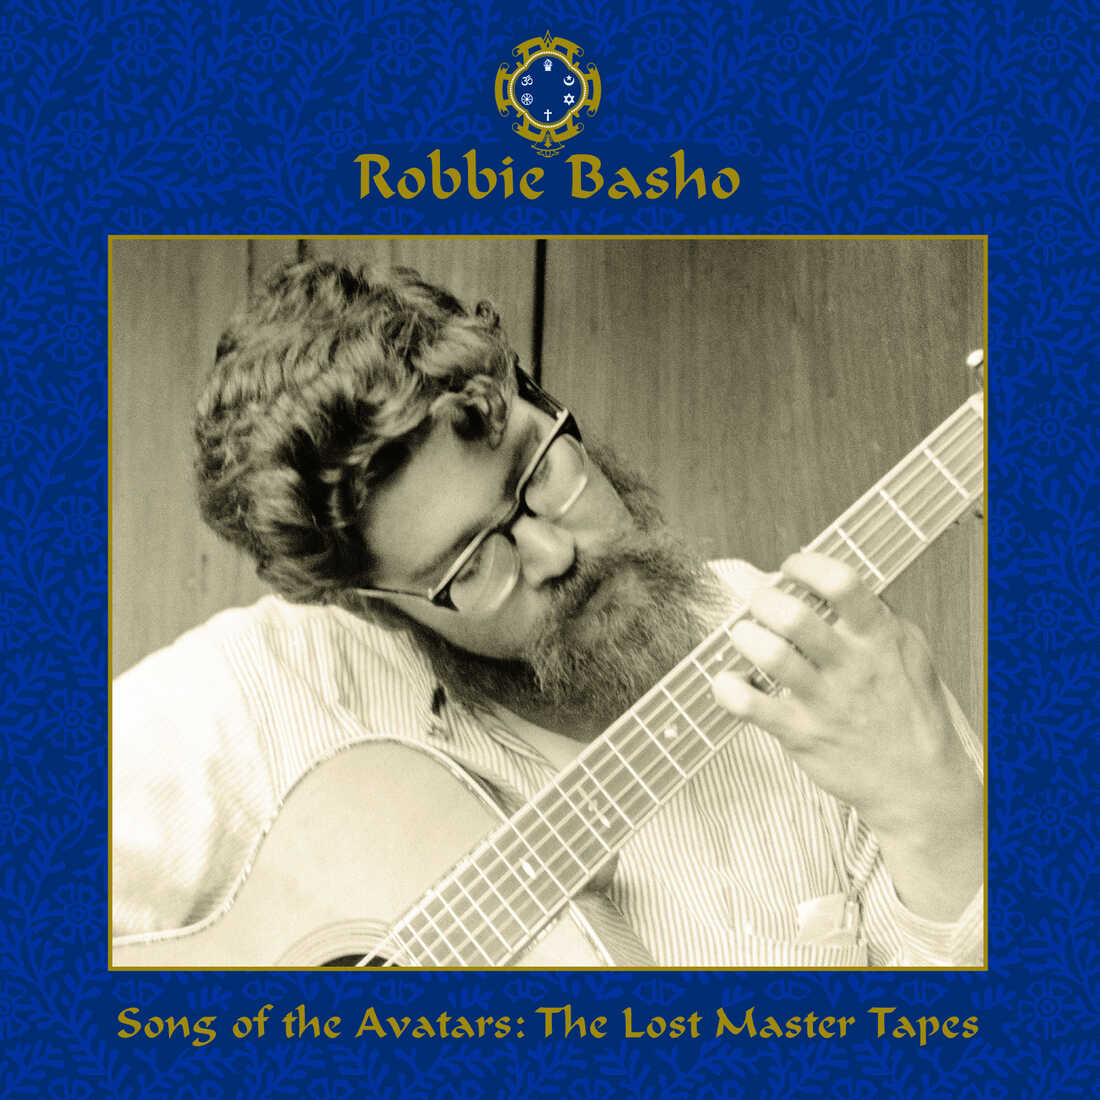 The cover of the new Robbie Basho boxed set Song of the Avatars.